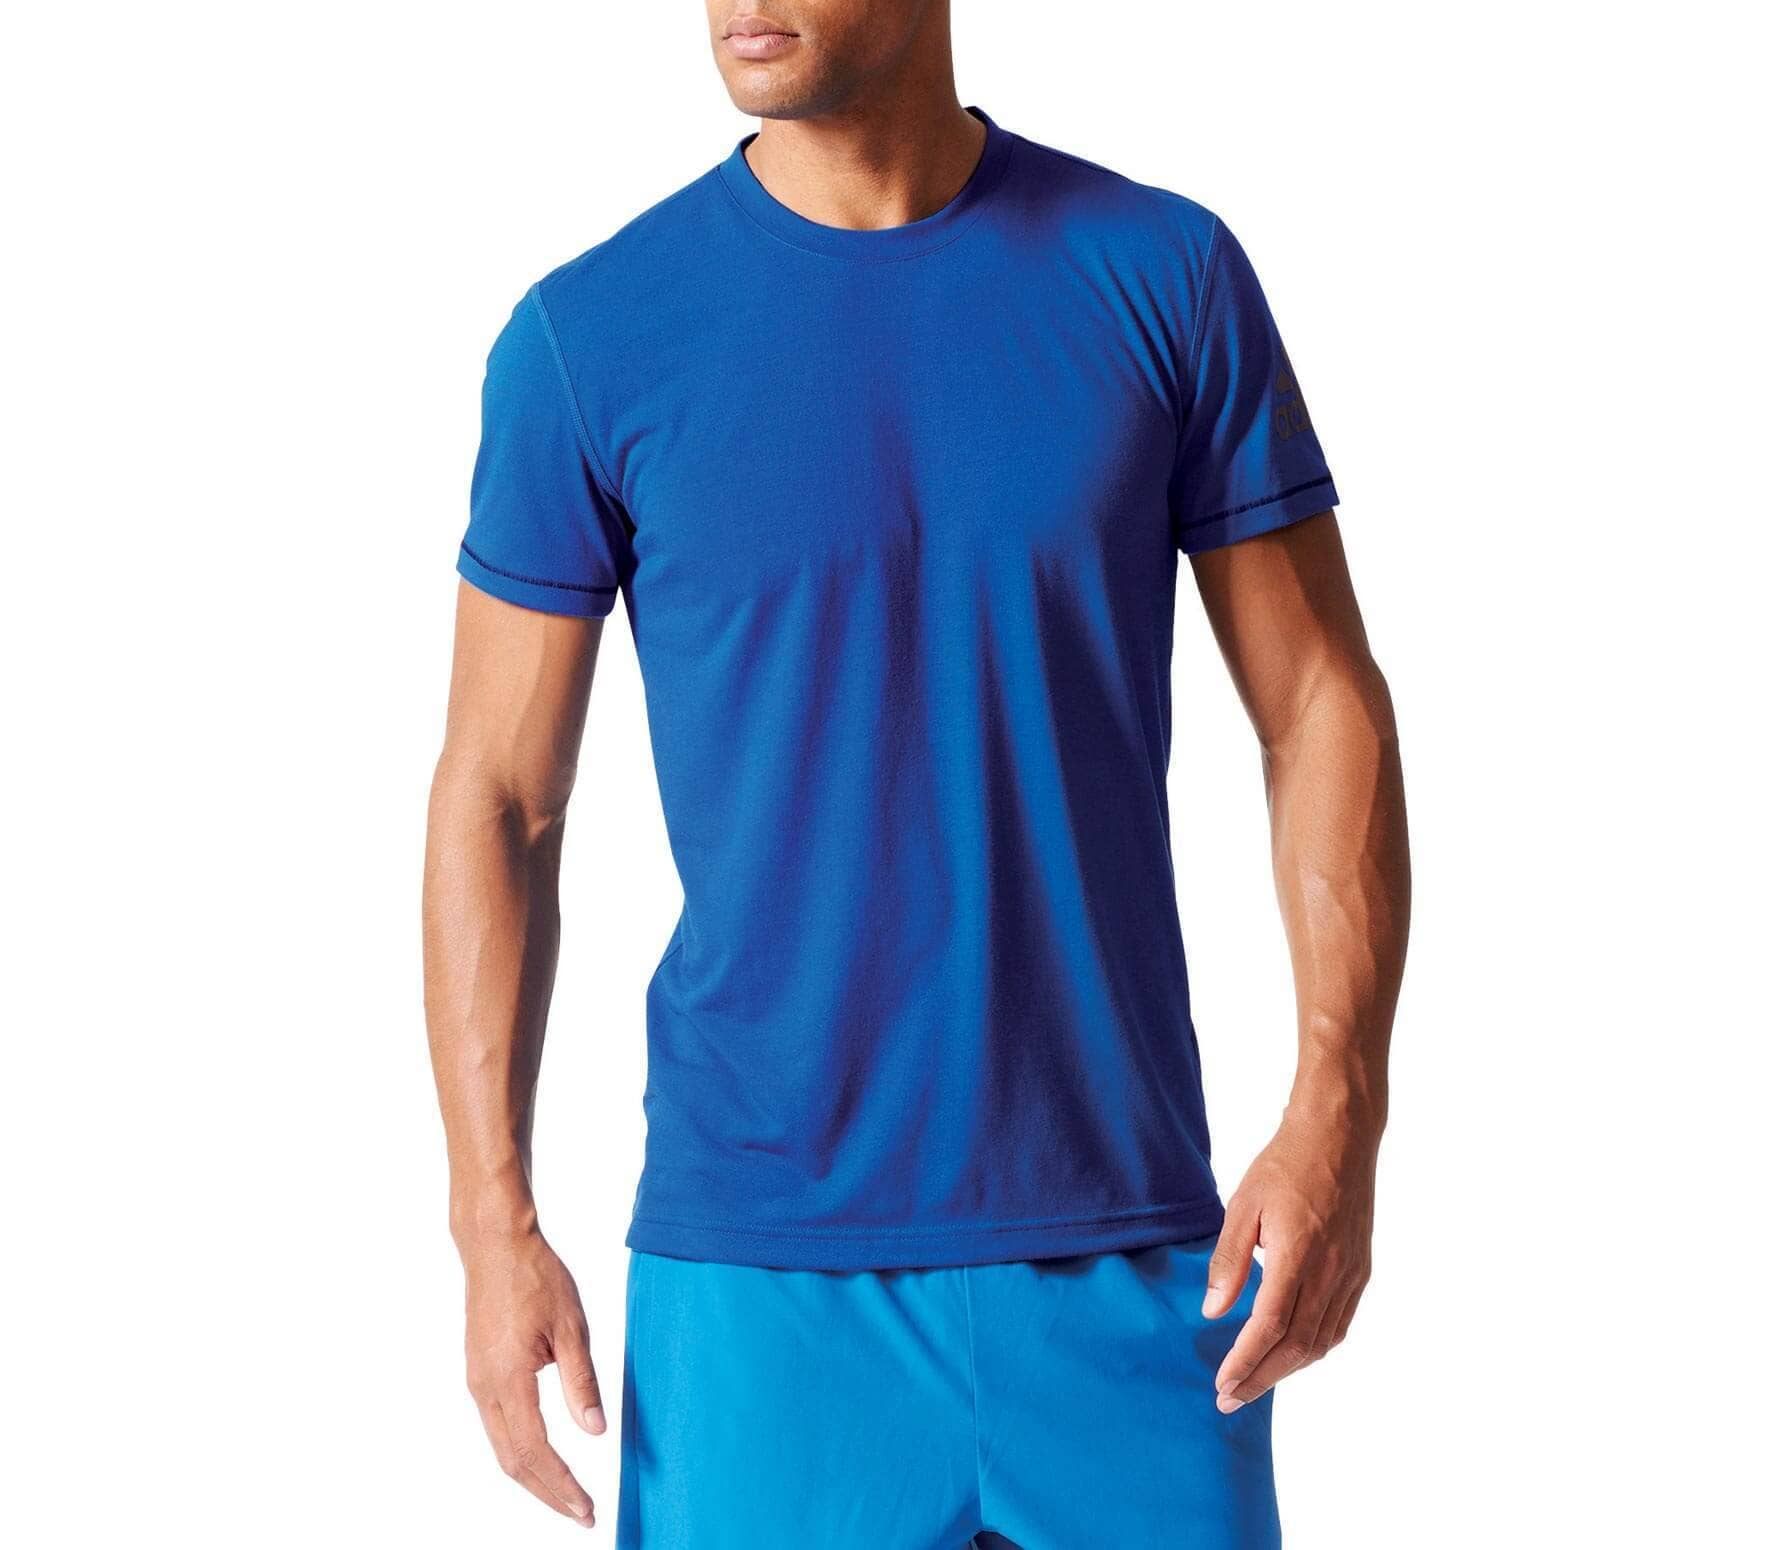 Men's Top Adidas Men Prime Training Dry Dye Tee wkXuTOPZi